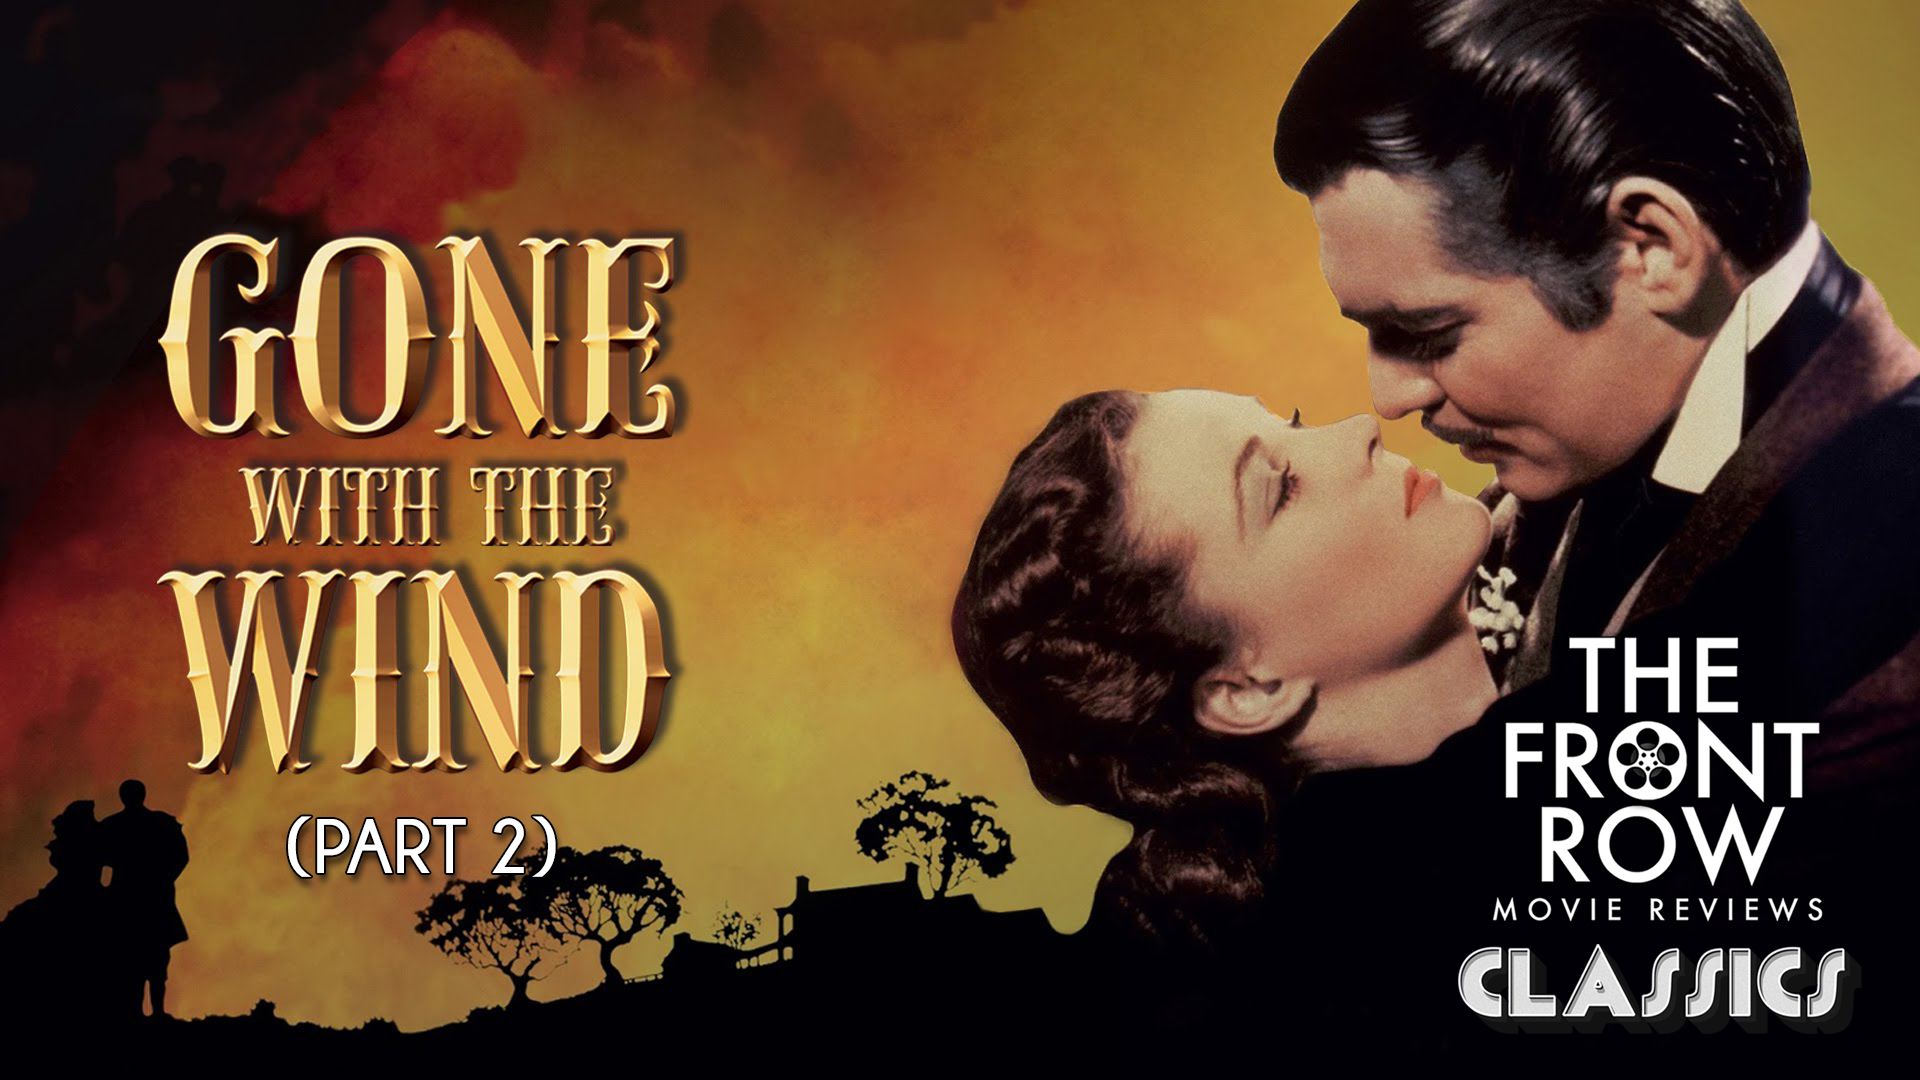 The Front Row Network: Classics - Gone With The Wind (Part 2)